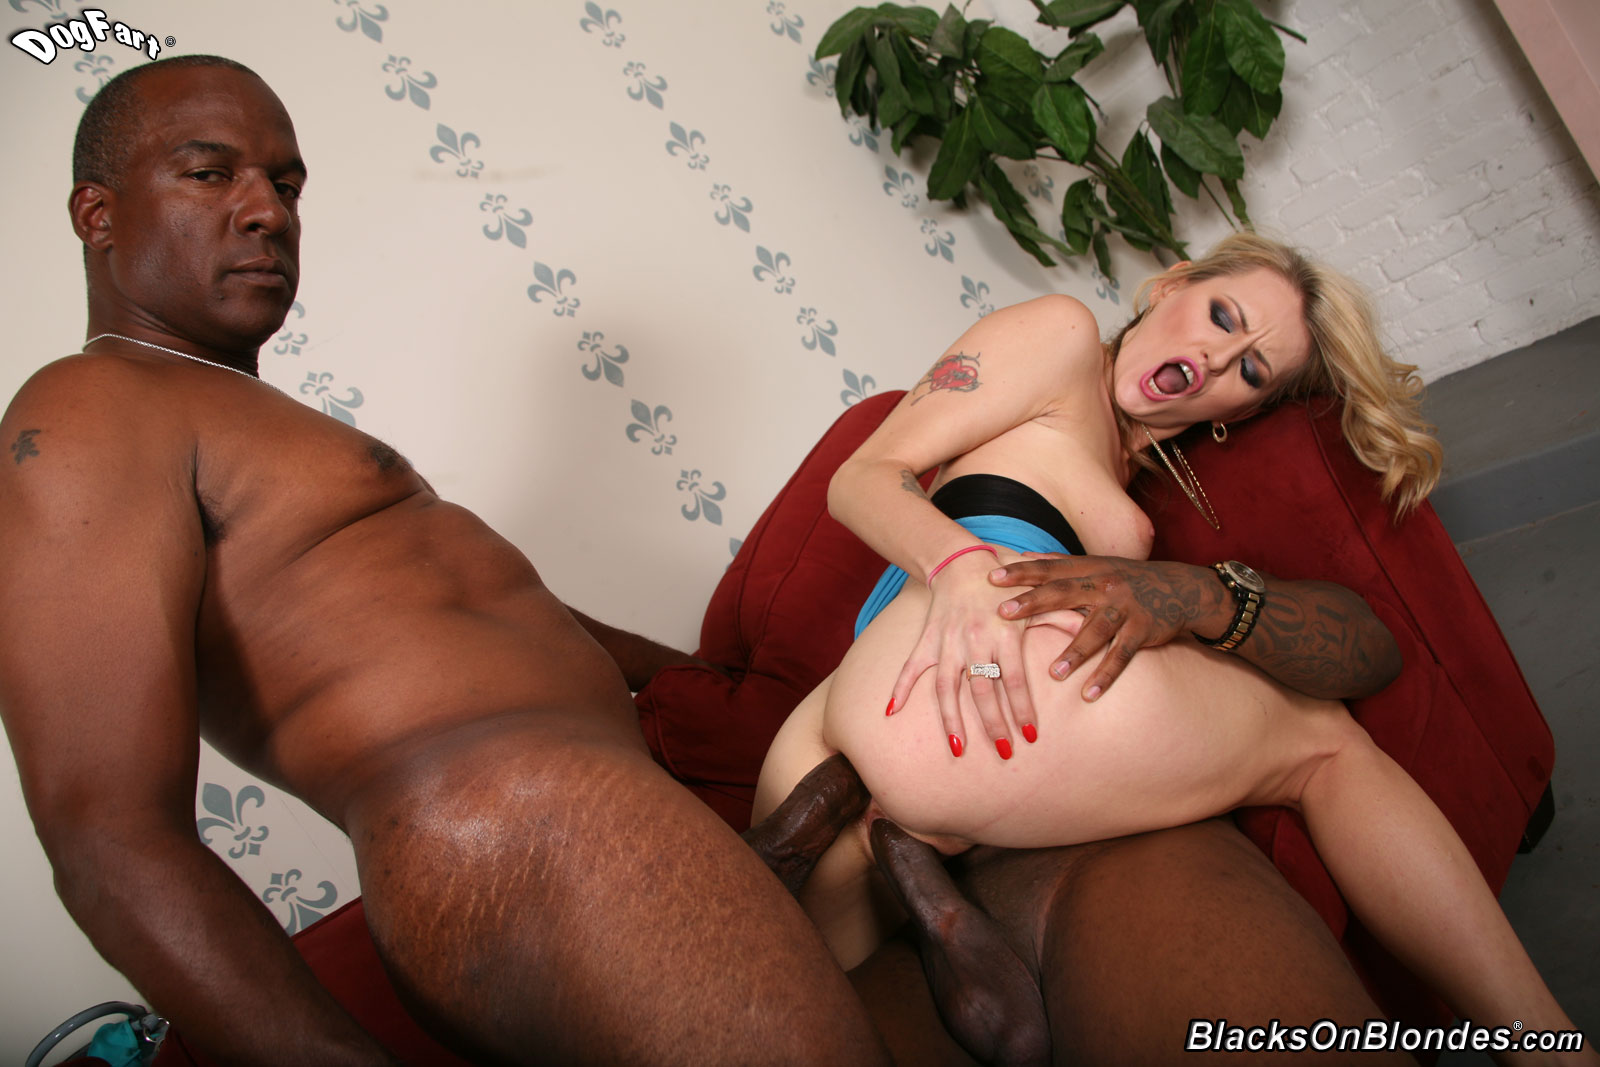 Beautiful body,nice interracial double black cocks in ass Nikki Benz